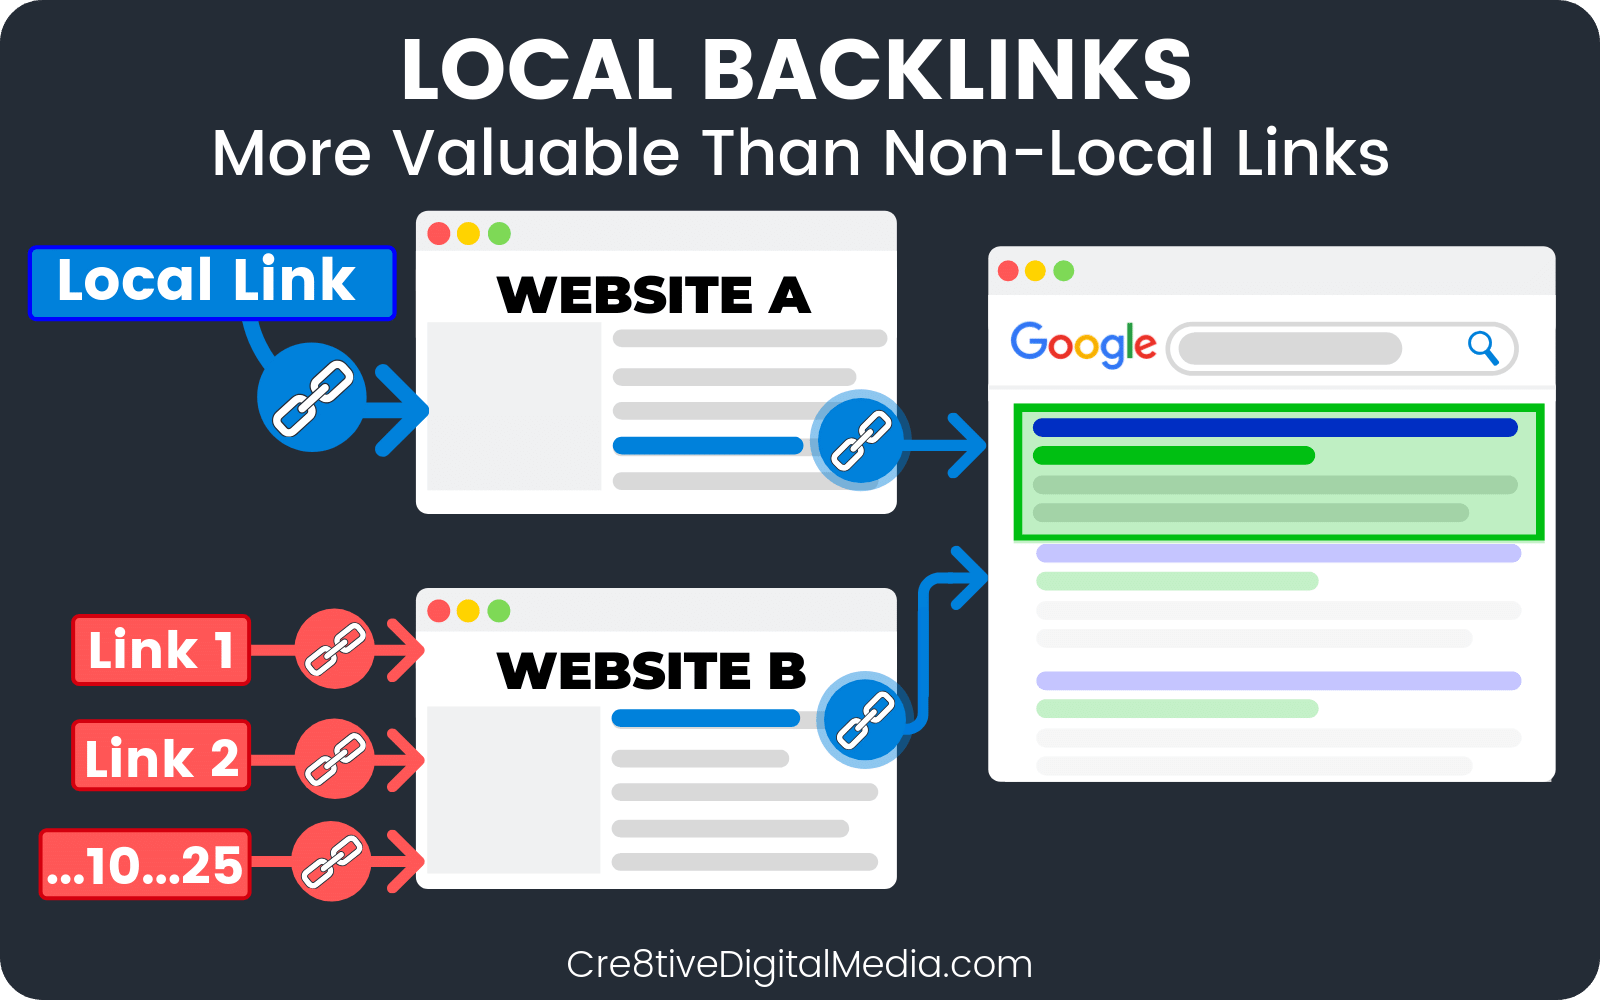 Local Backlinks vs. Regular Backlinks